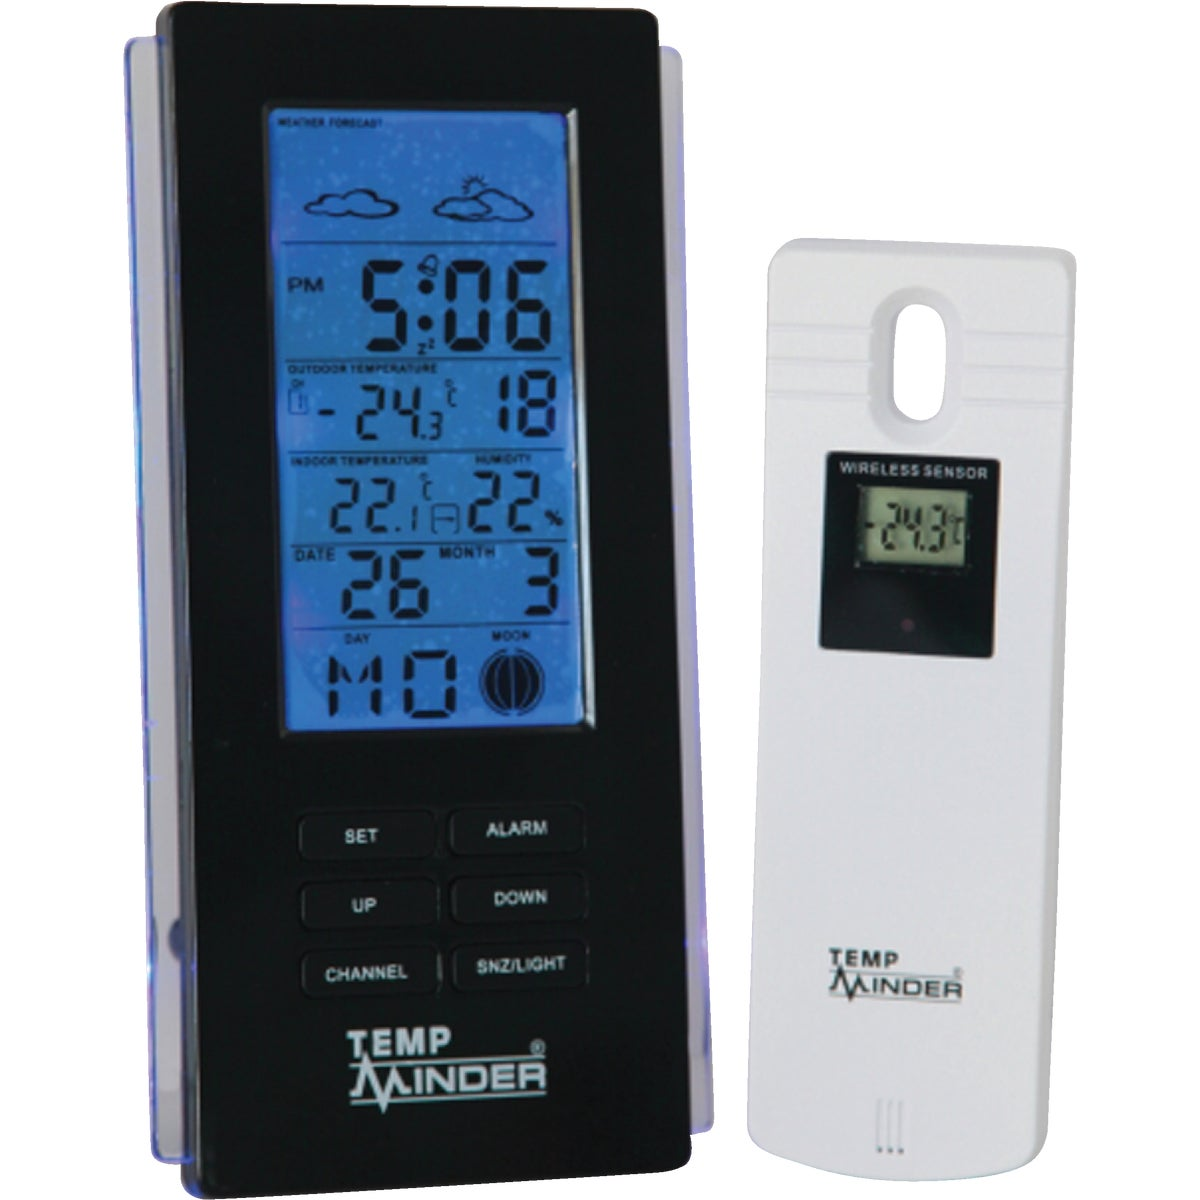 WIRELESS WEATHER CENTER - MRI-211MX by Minder Research